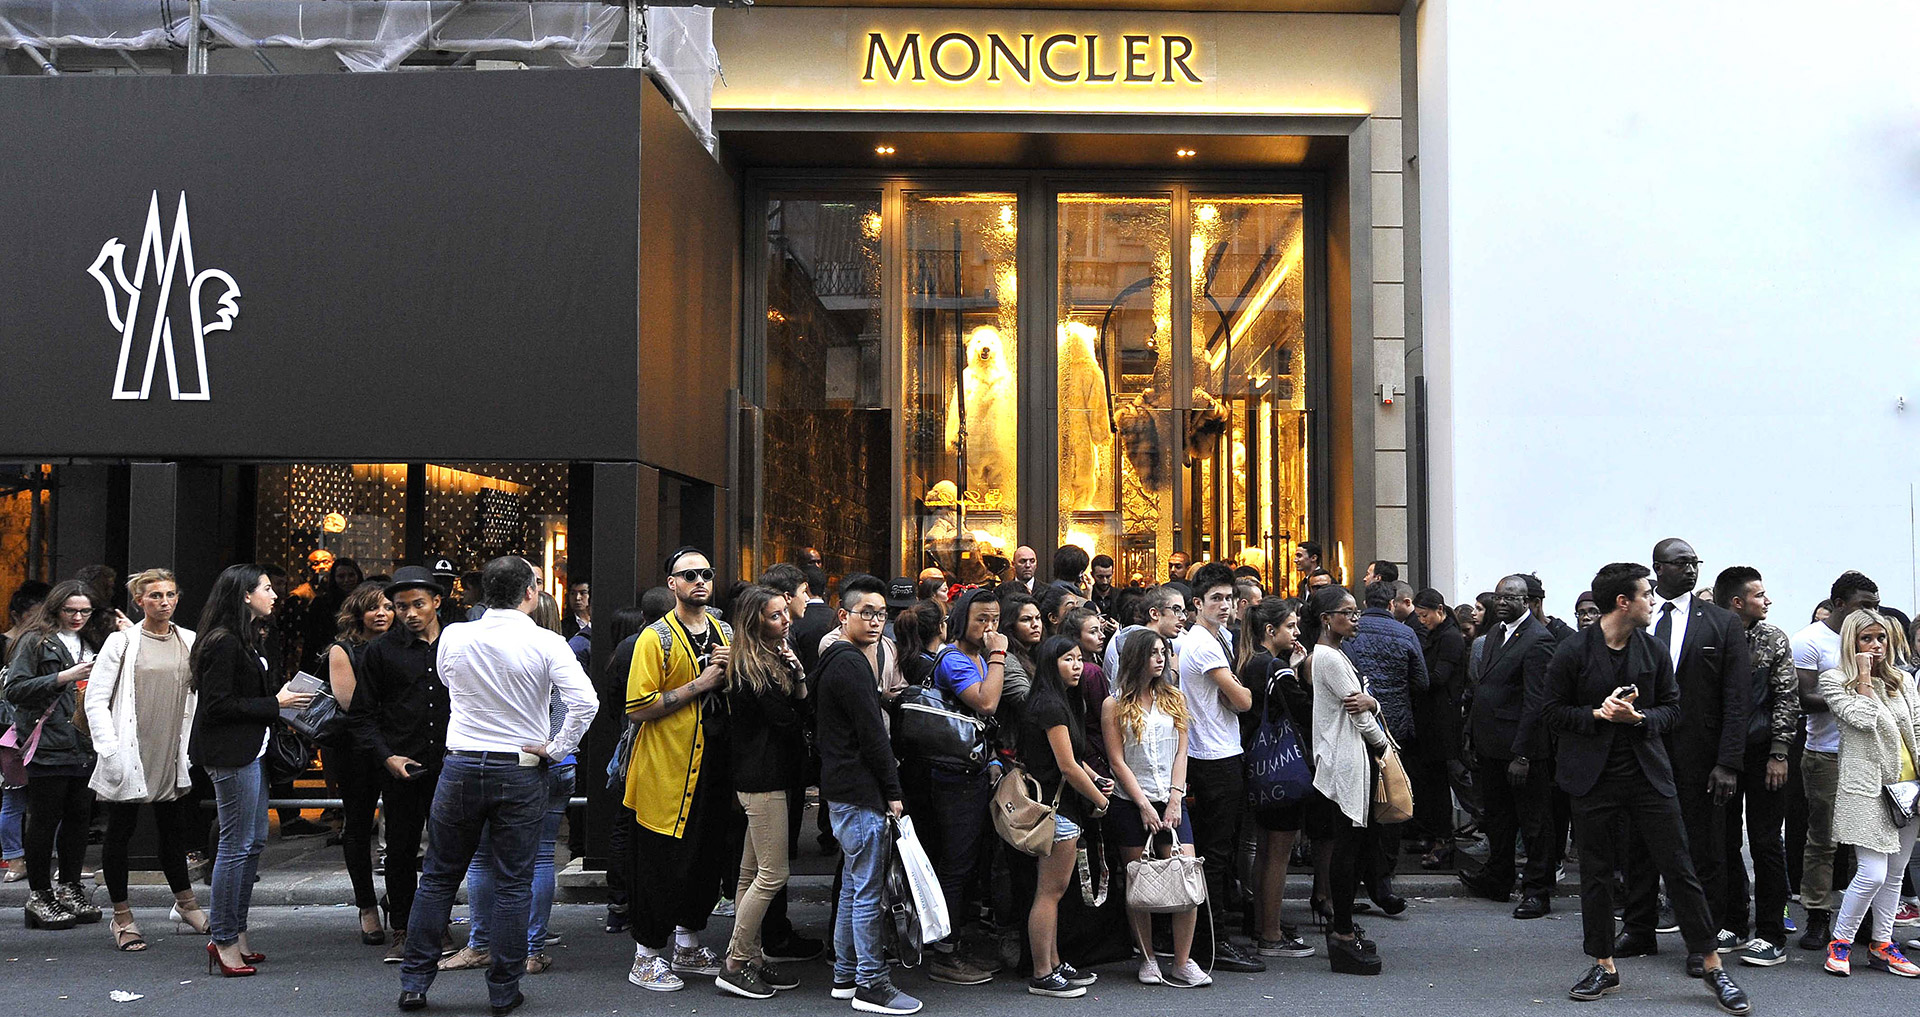 How to trade Moncler  - BSIC   Bocconi Students Investment Club 05cb9fa5f53